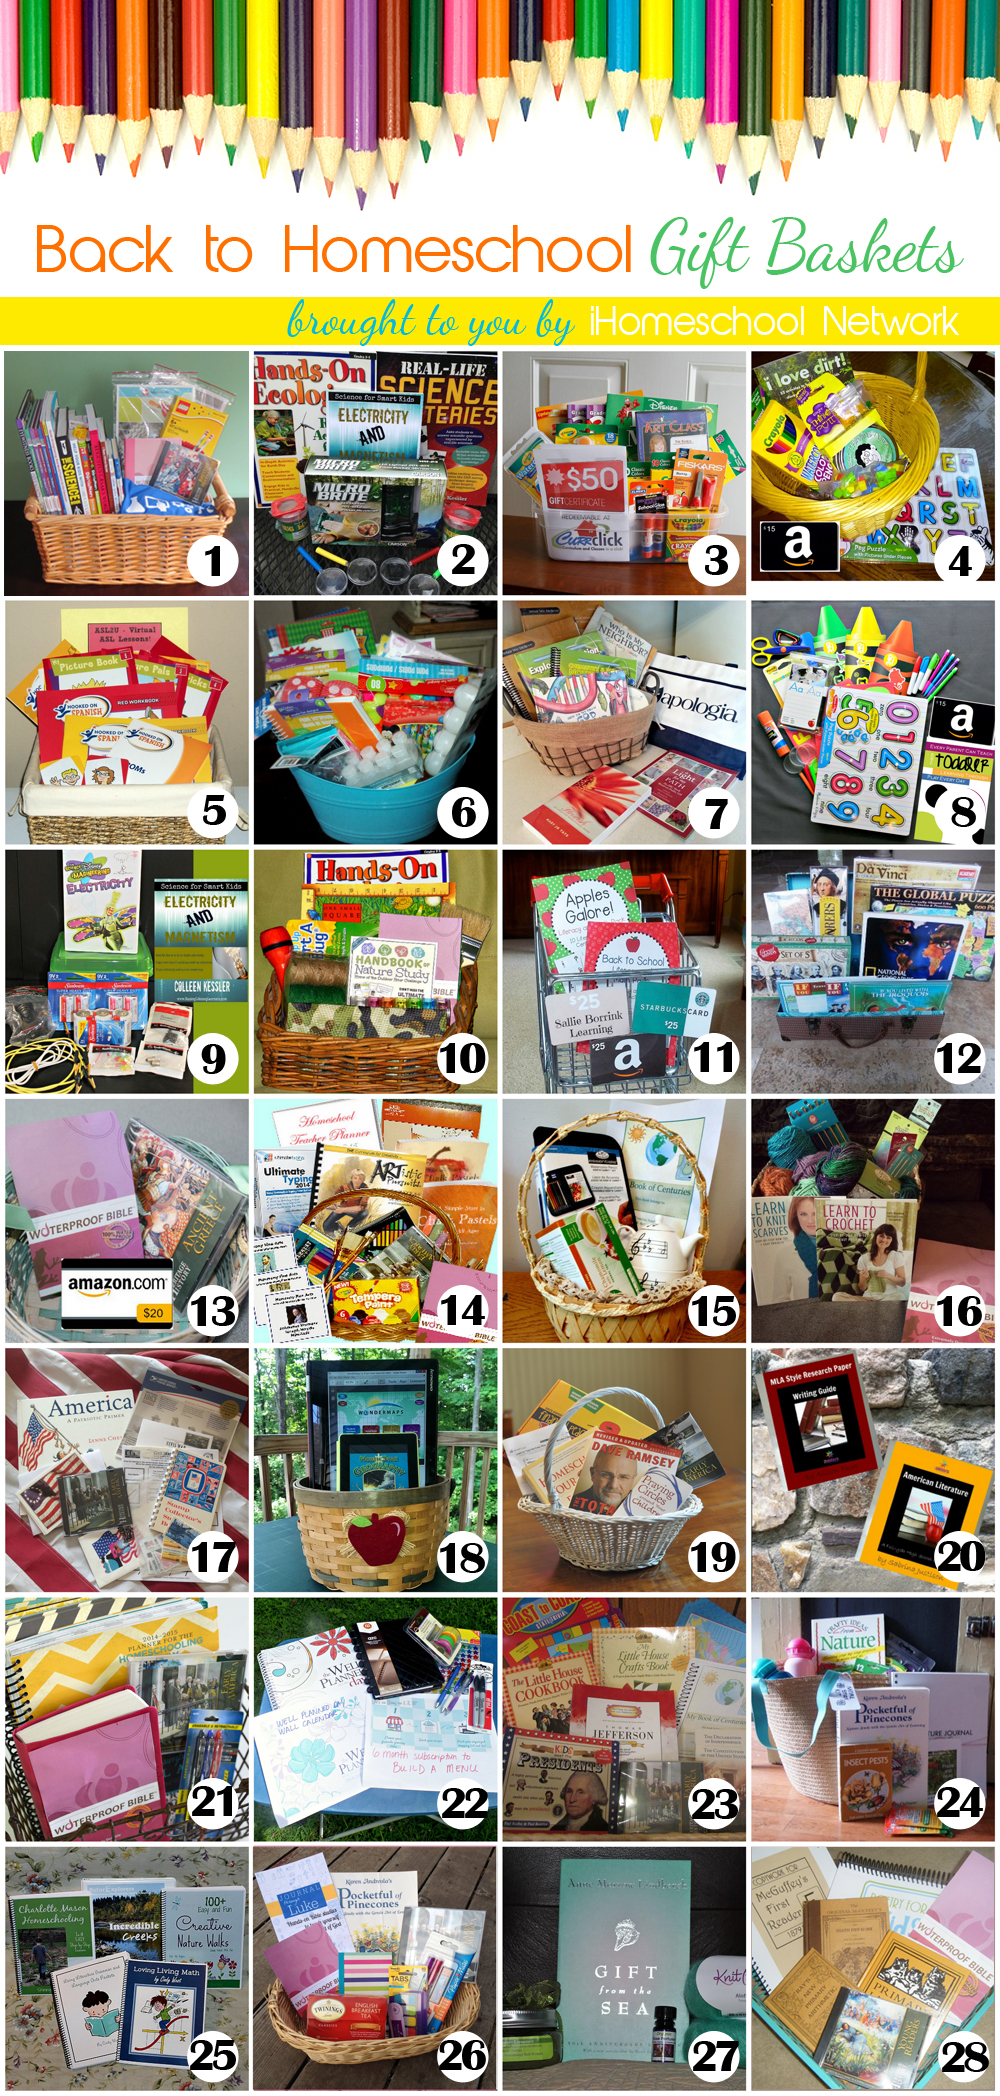 iHN Back to Homeschool Gift Baskets